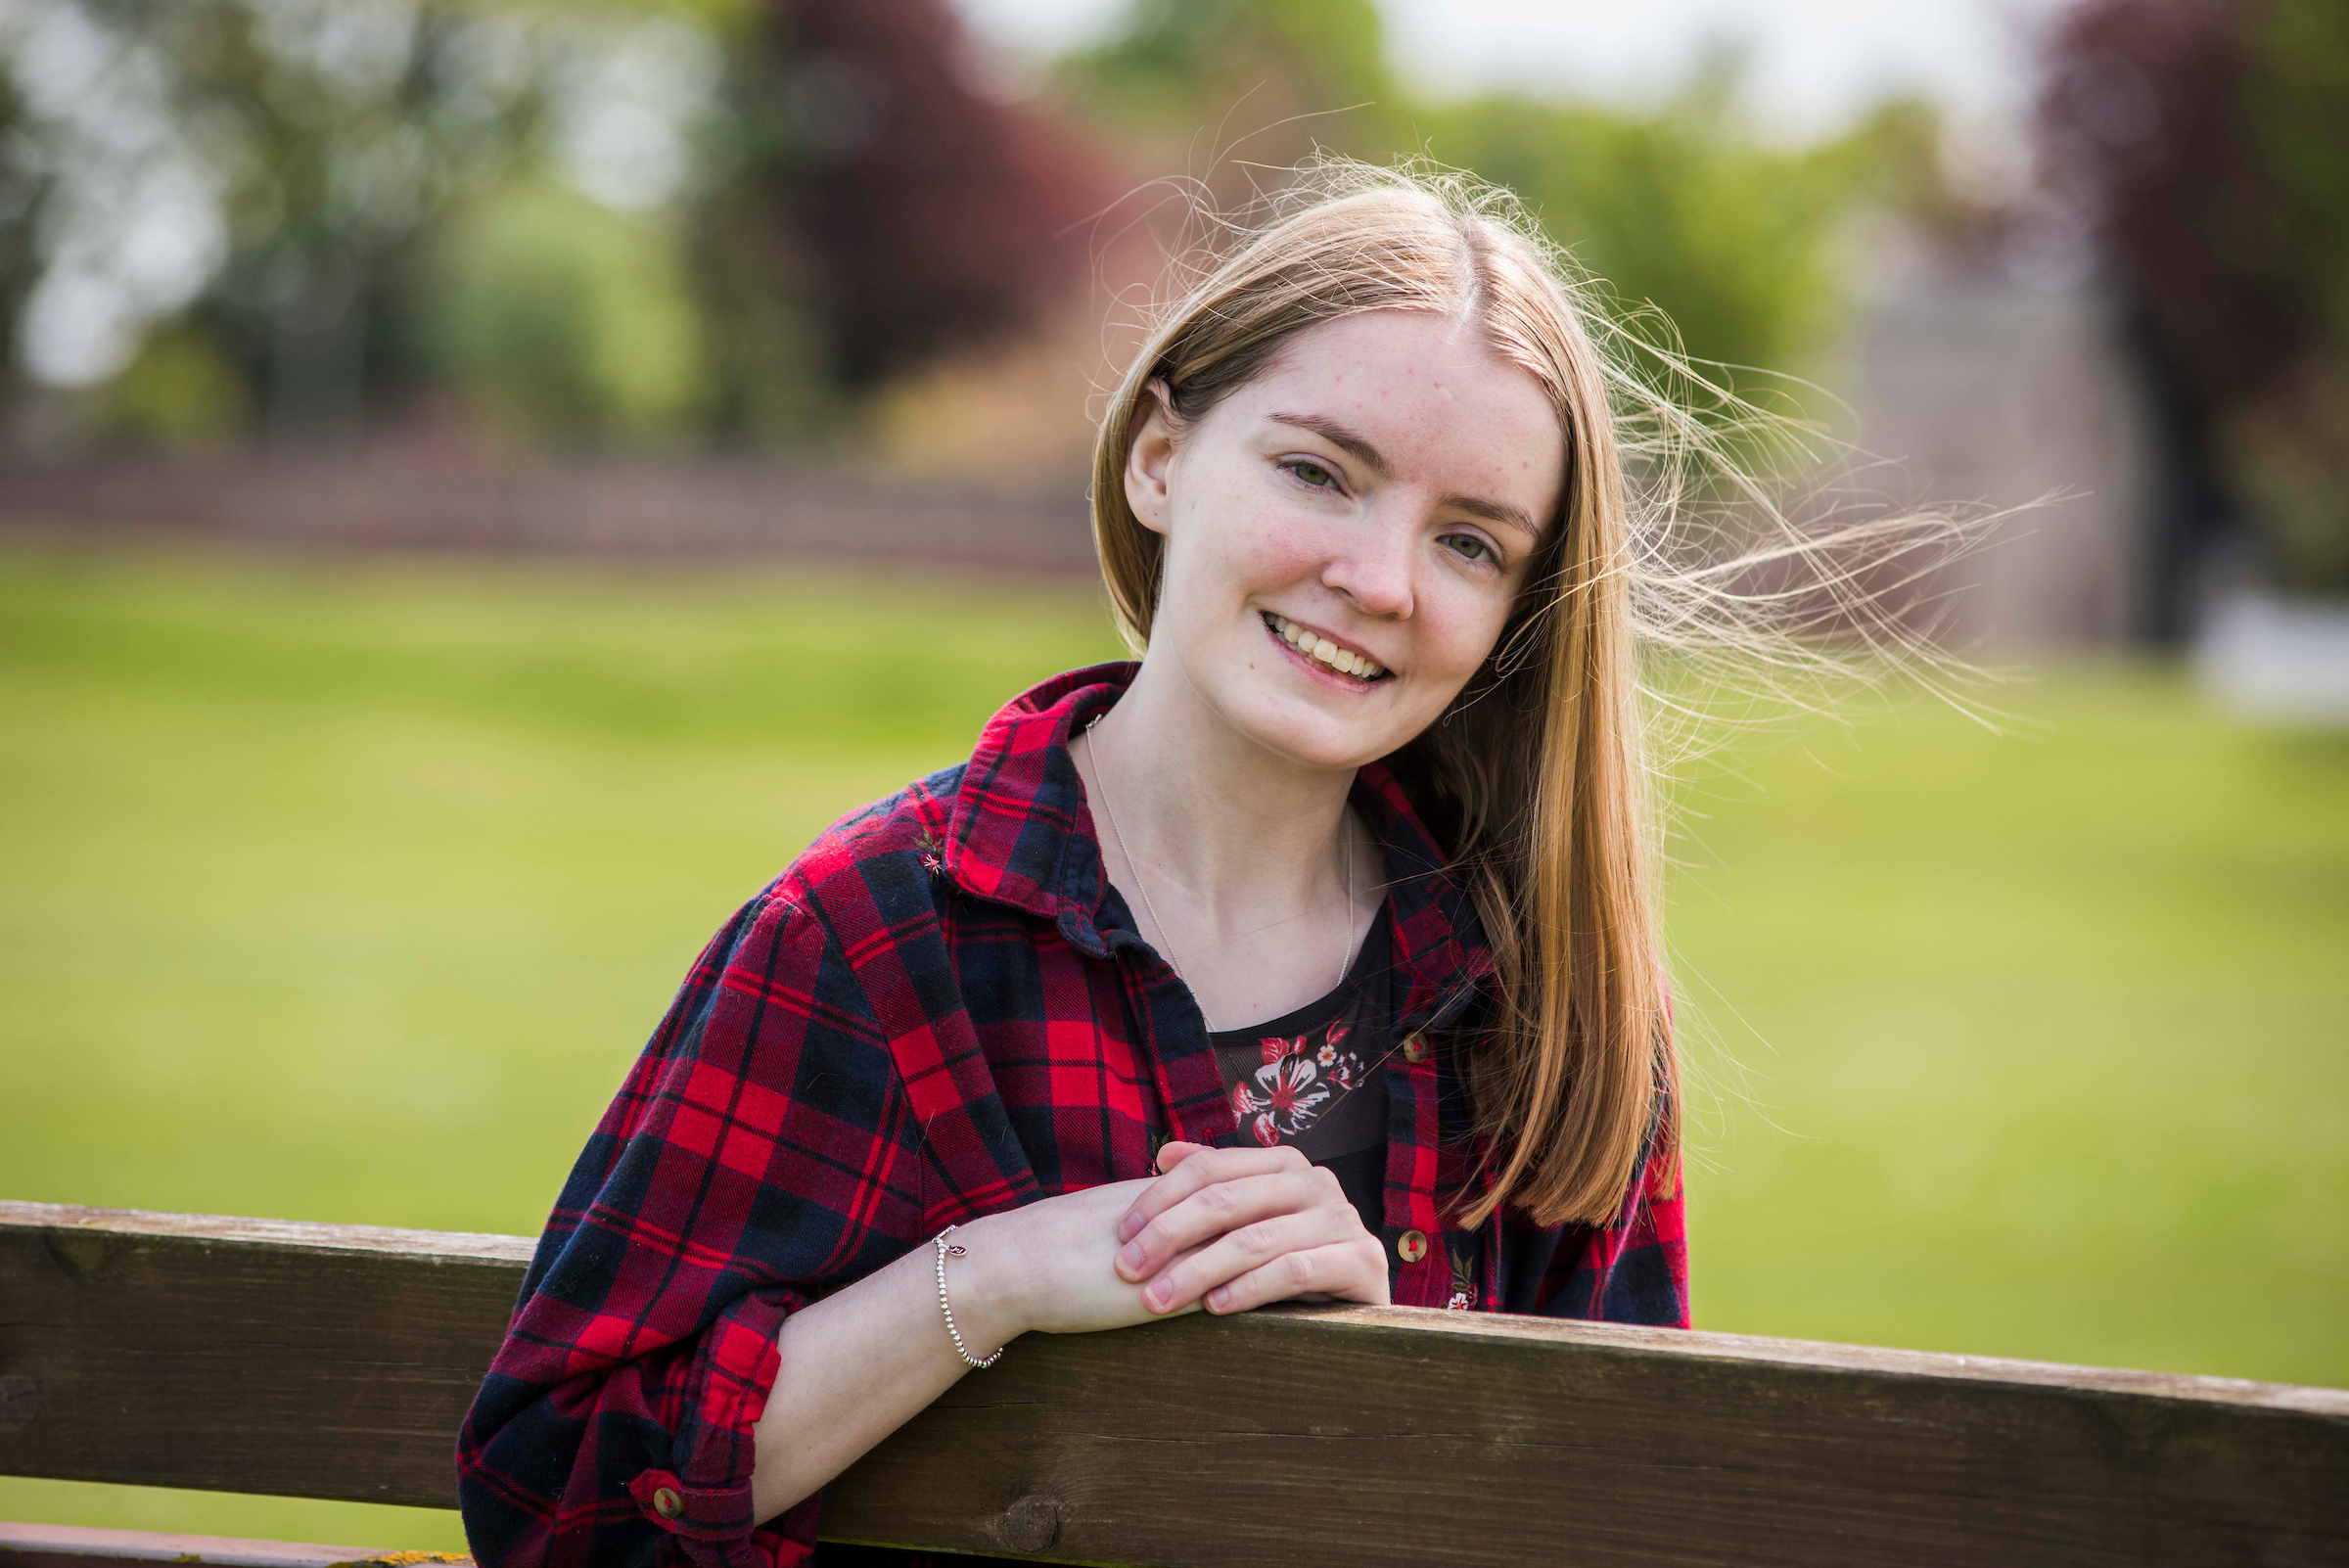 Hollie Simpson, 22, suffered a stroke in 2016.